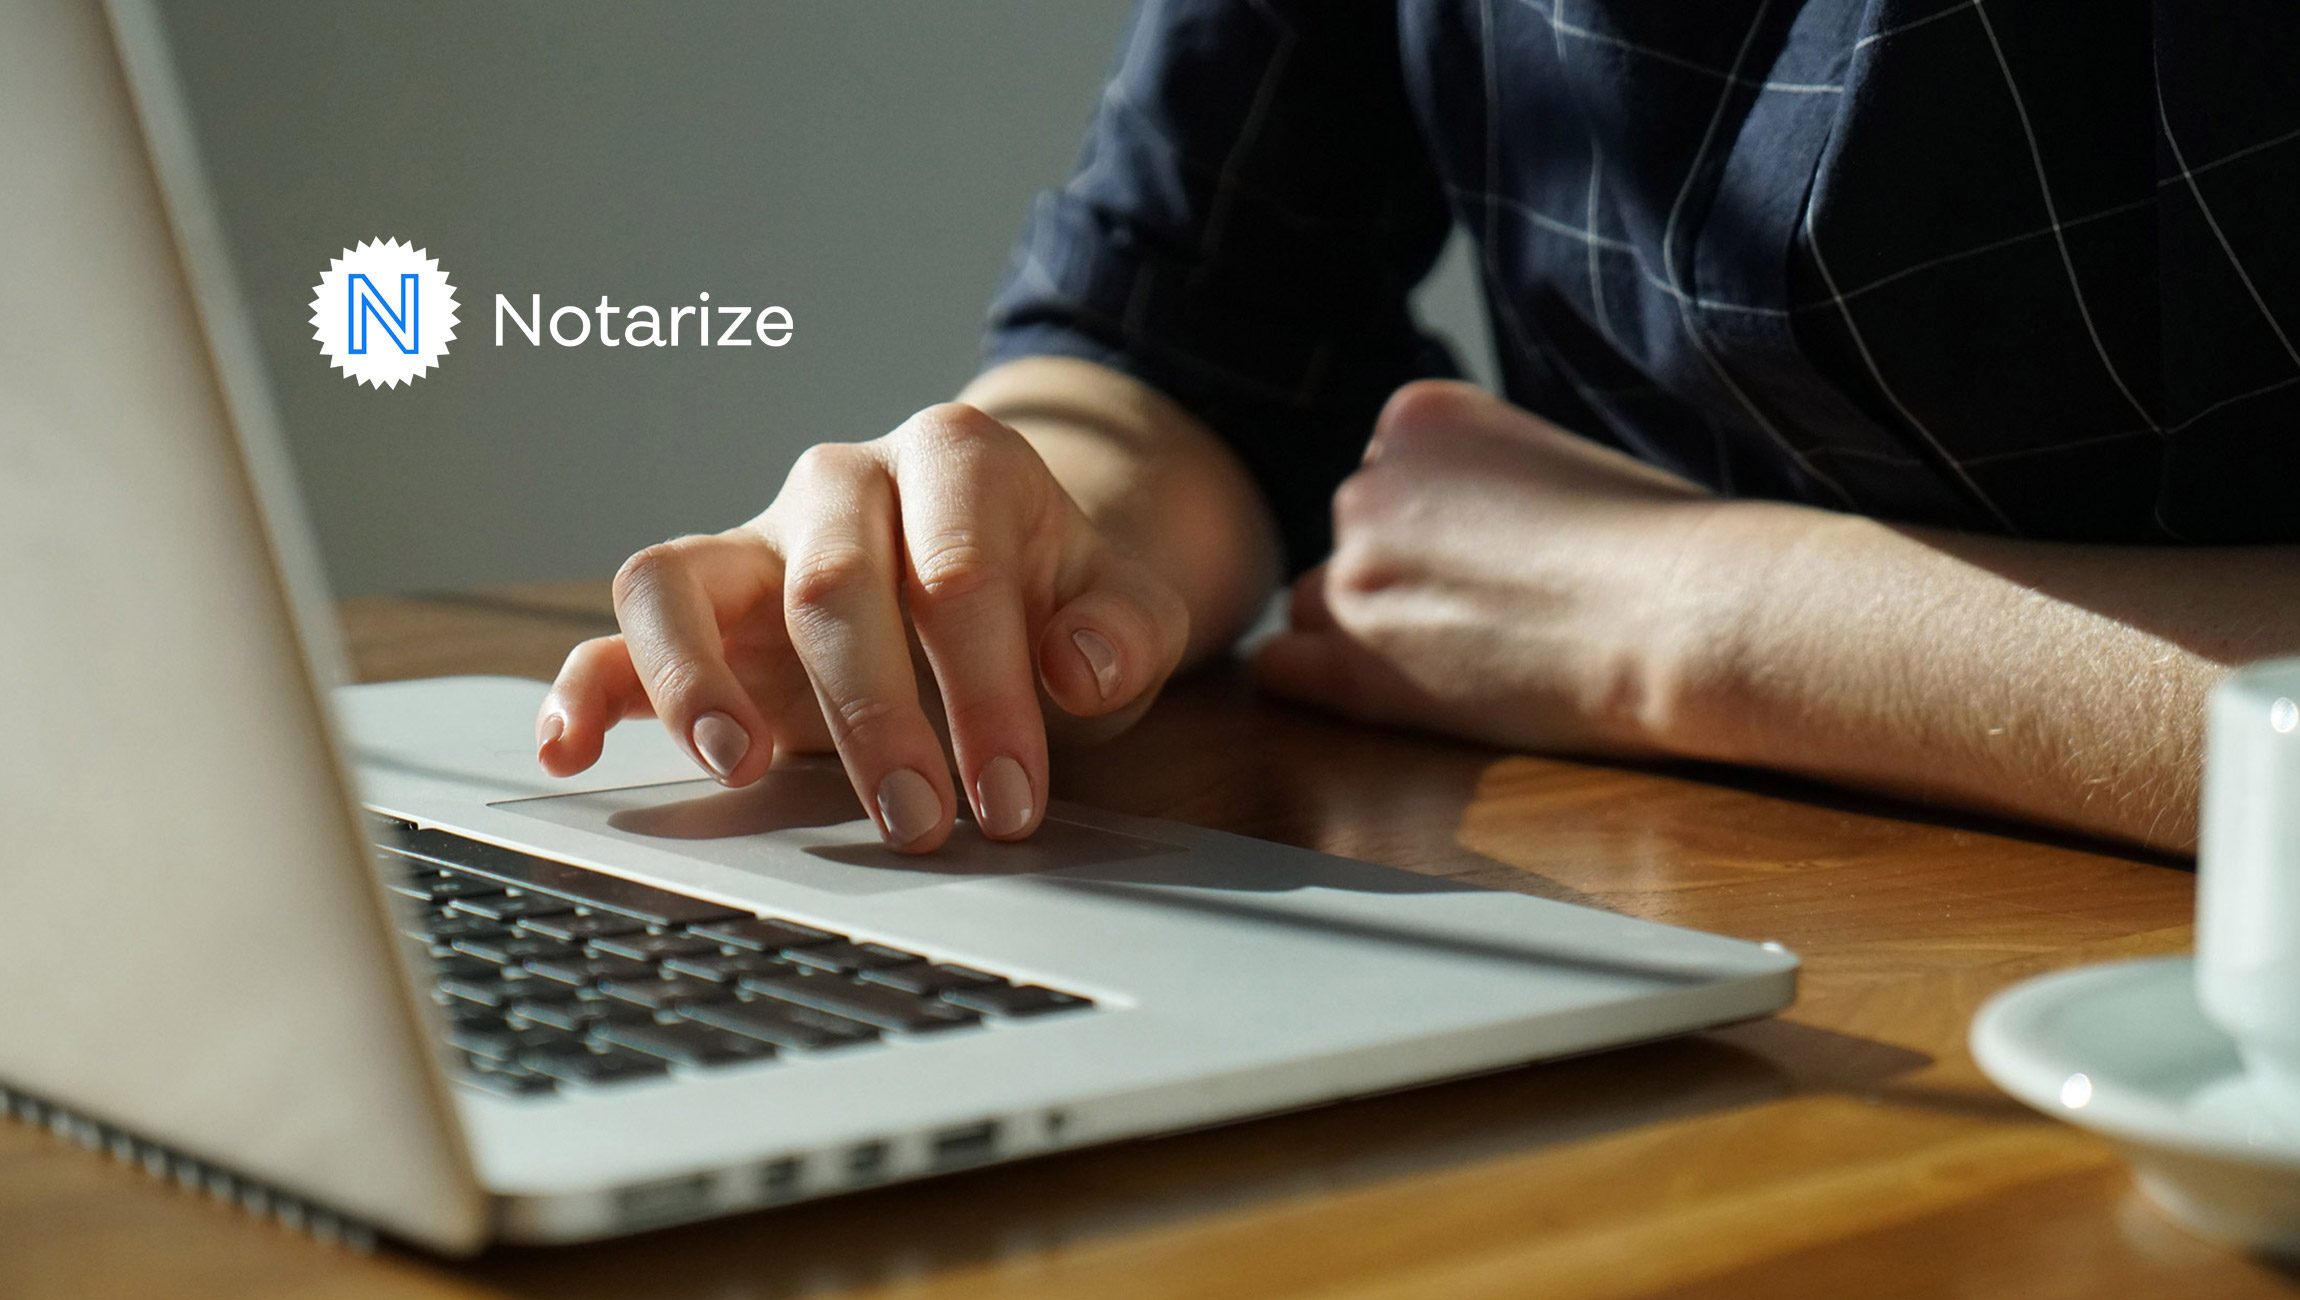 Correcting and Replacing Notarize Adds Senior Executives from LogMeIn, State Street to Board